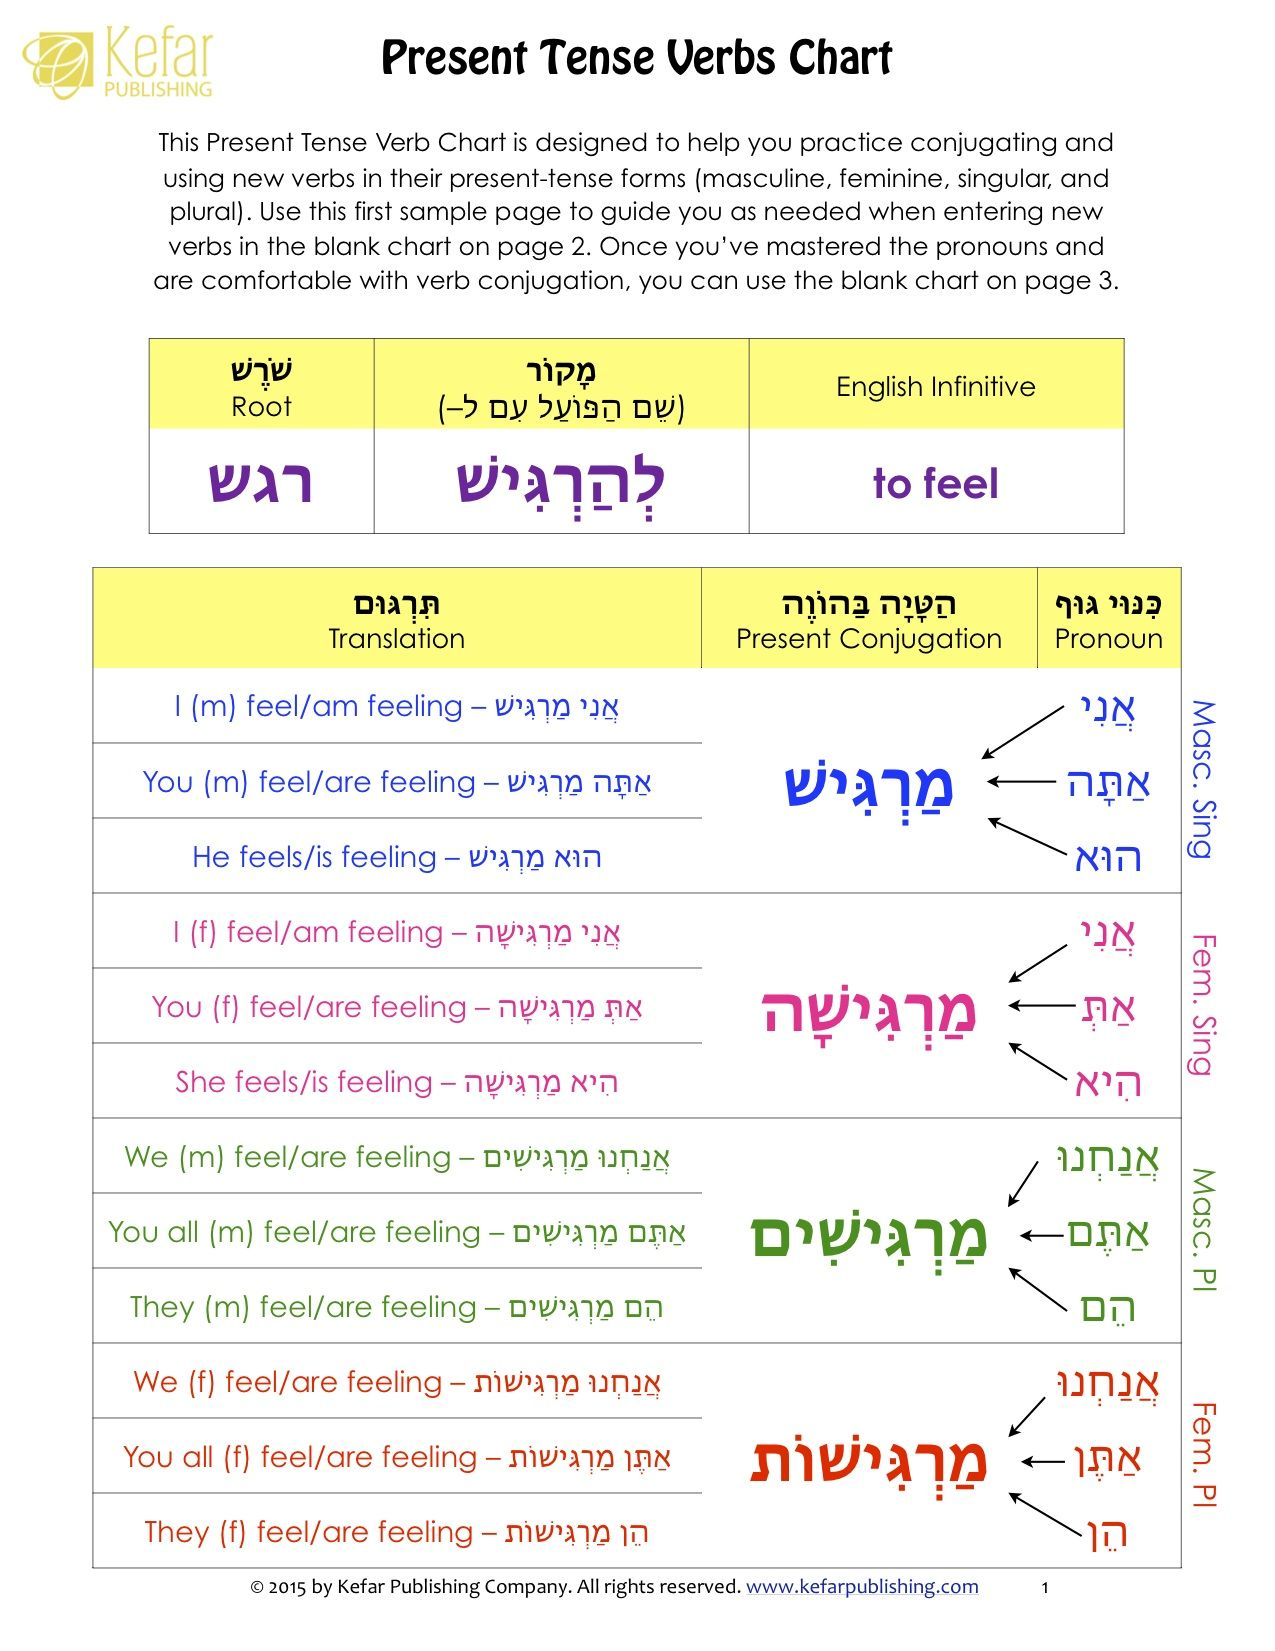 Hebrew Study - Free downloads and reviews - CNET Download.com